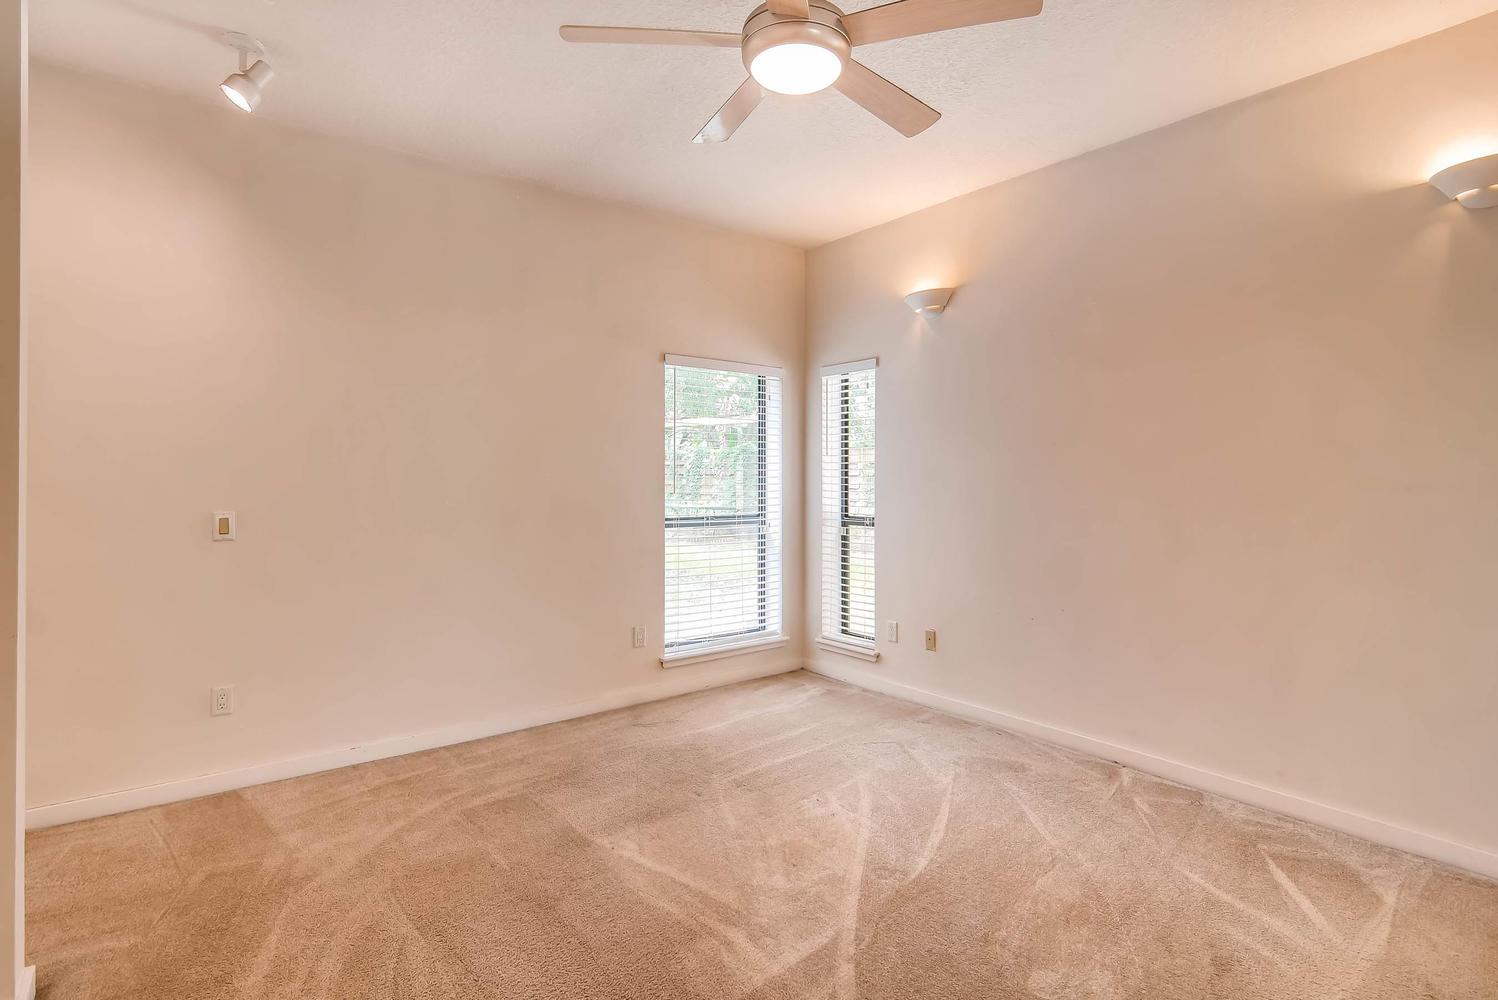 Photo of 759 Franklin St, Altamonte Springs, FL, 32701